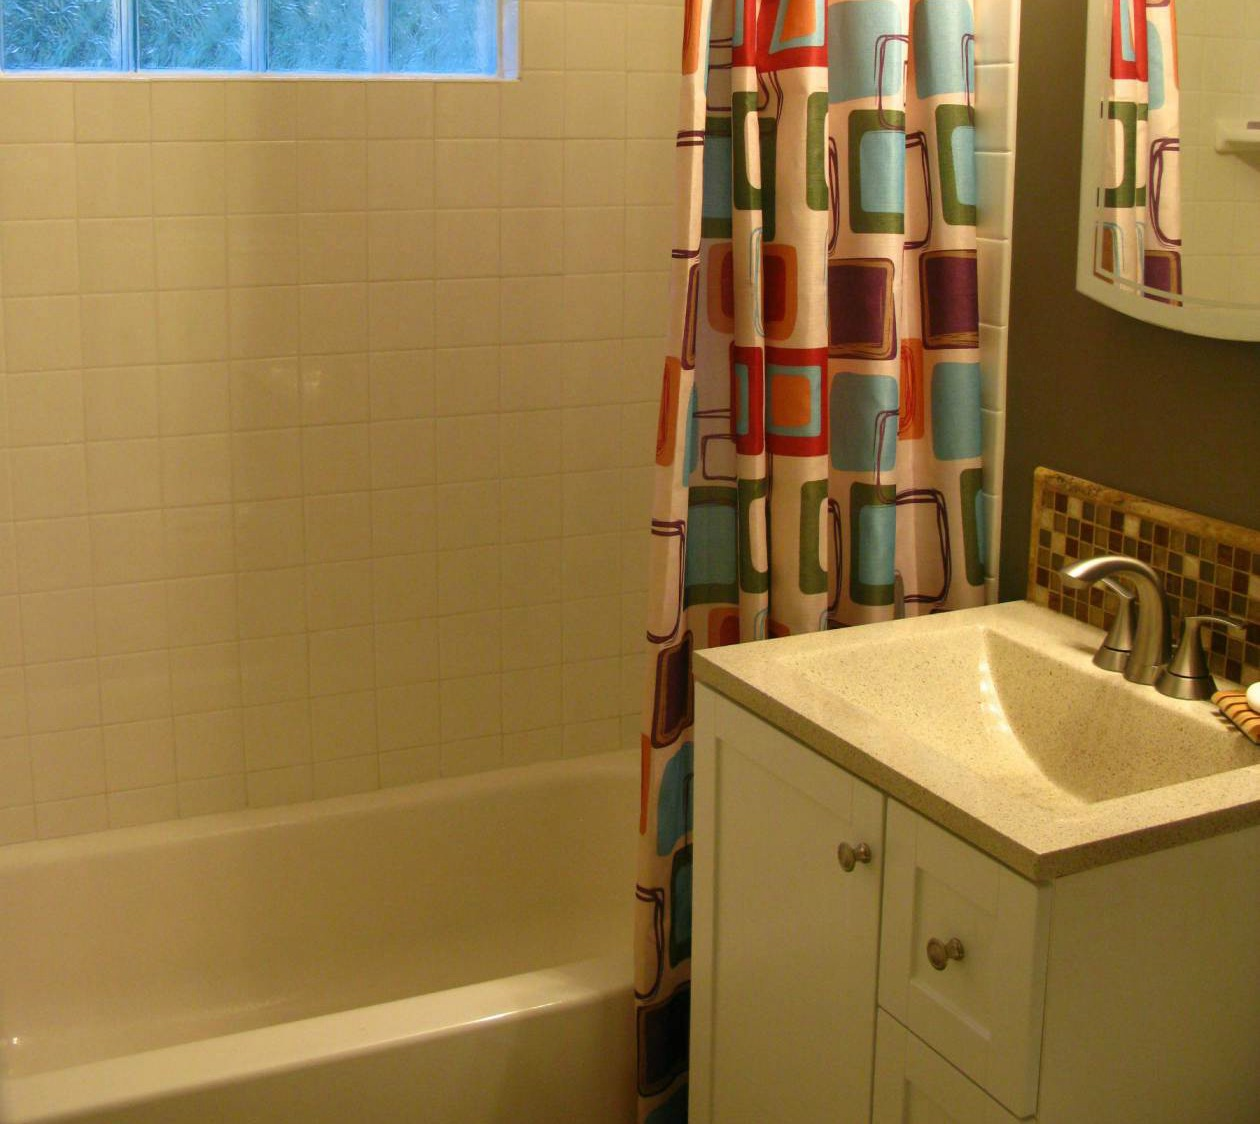 How To Start A Bathroom Remodel Interesting Bathroom Remodel From Start To Finish Decorating Design